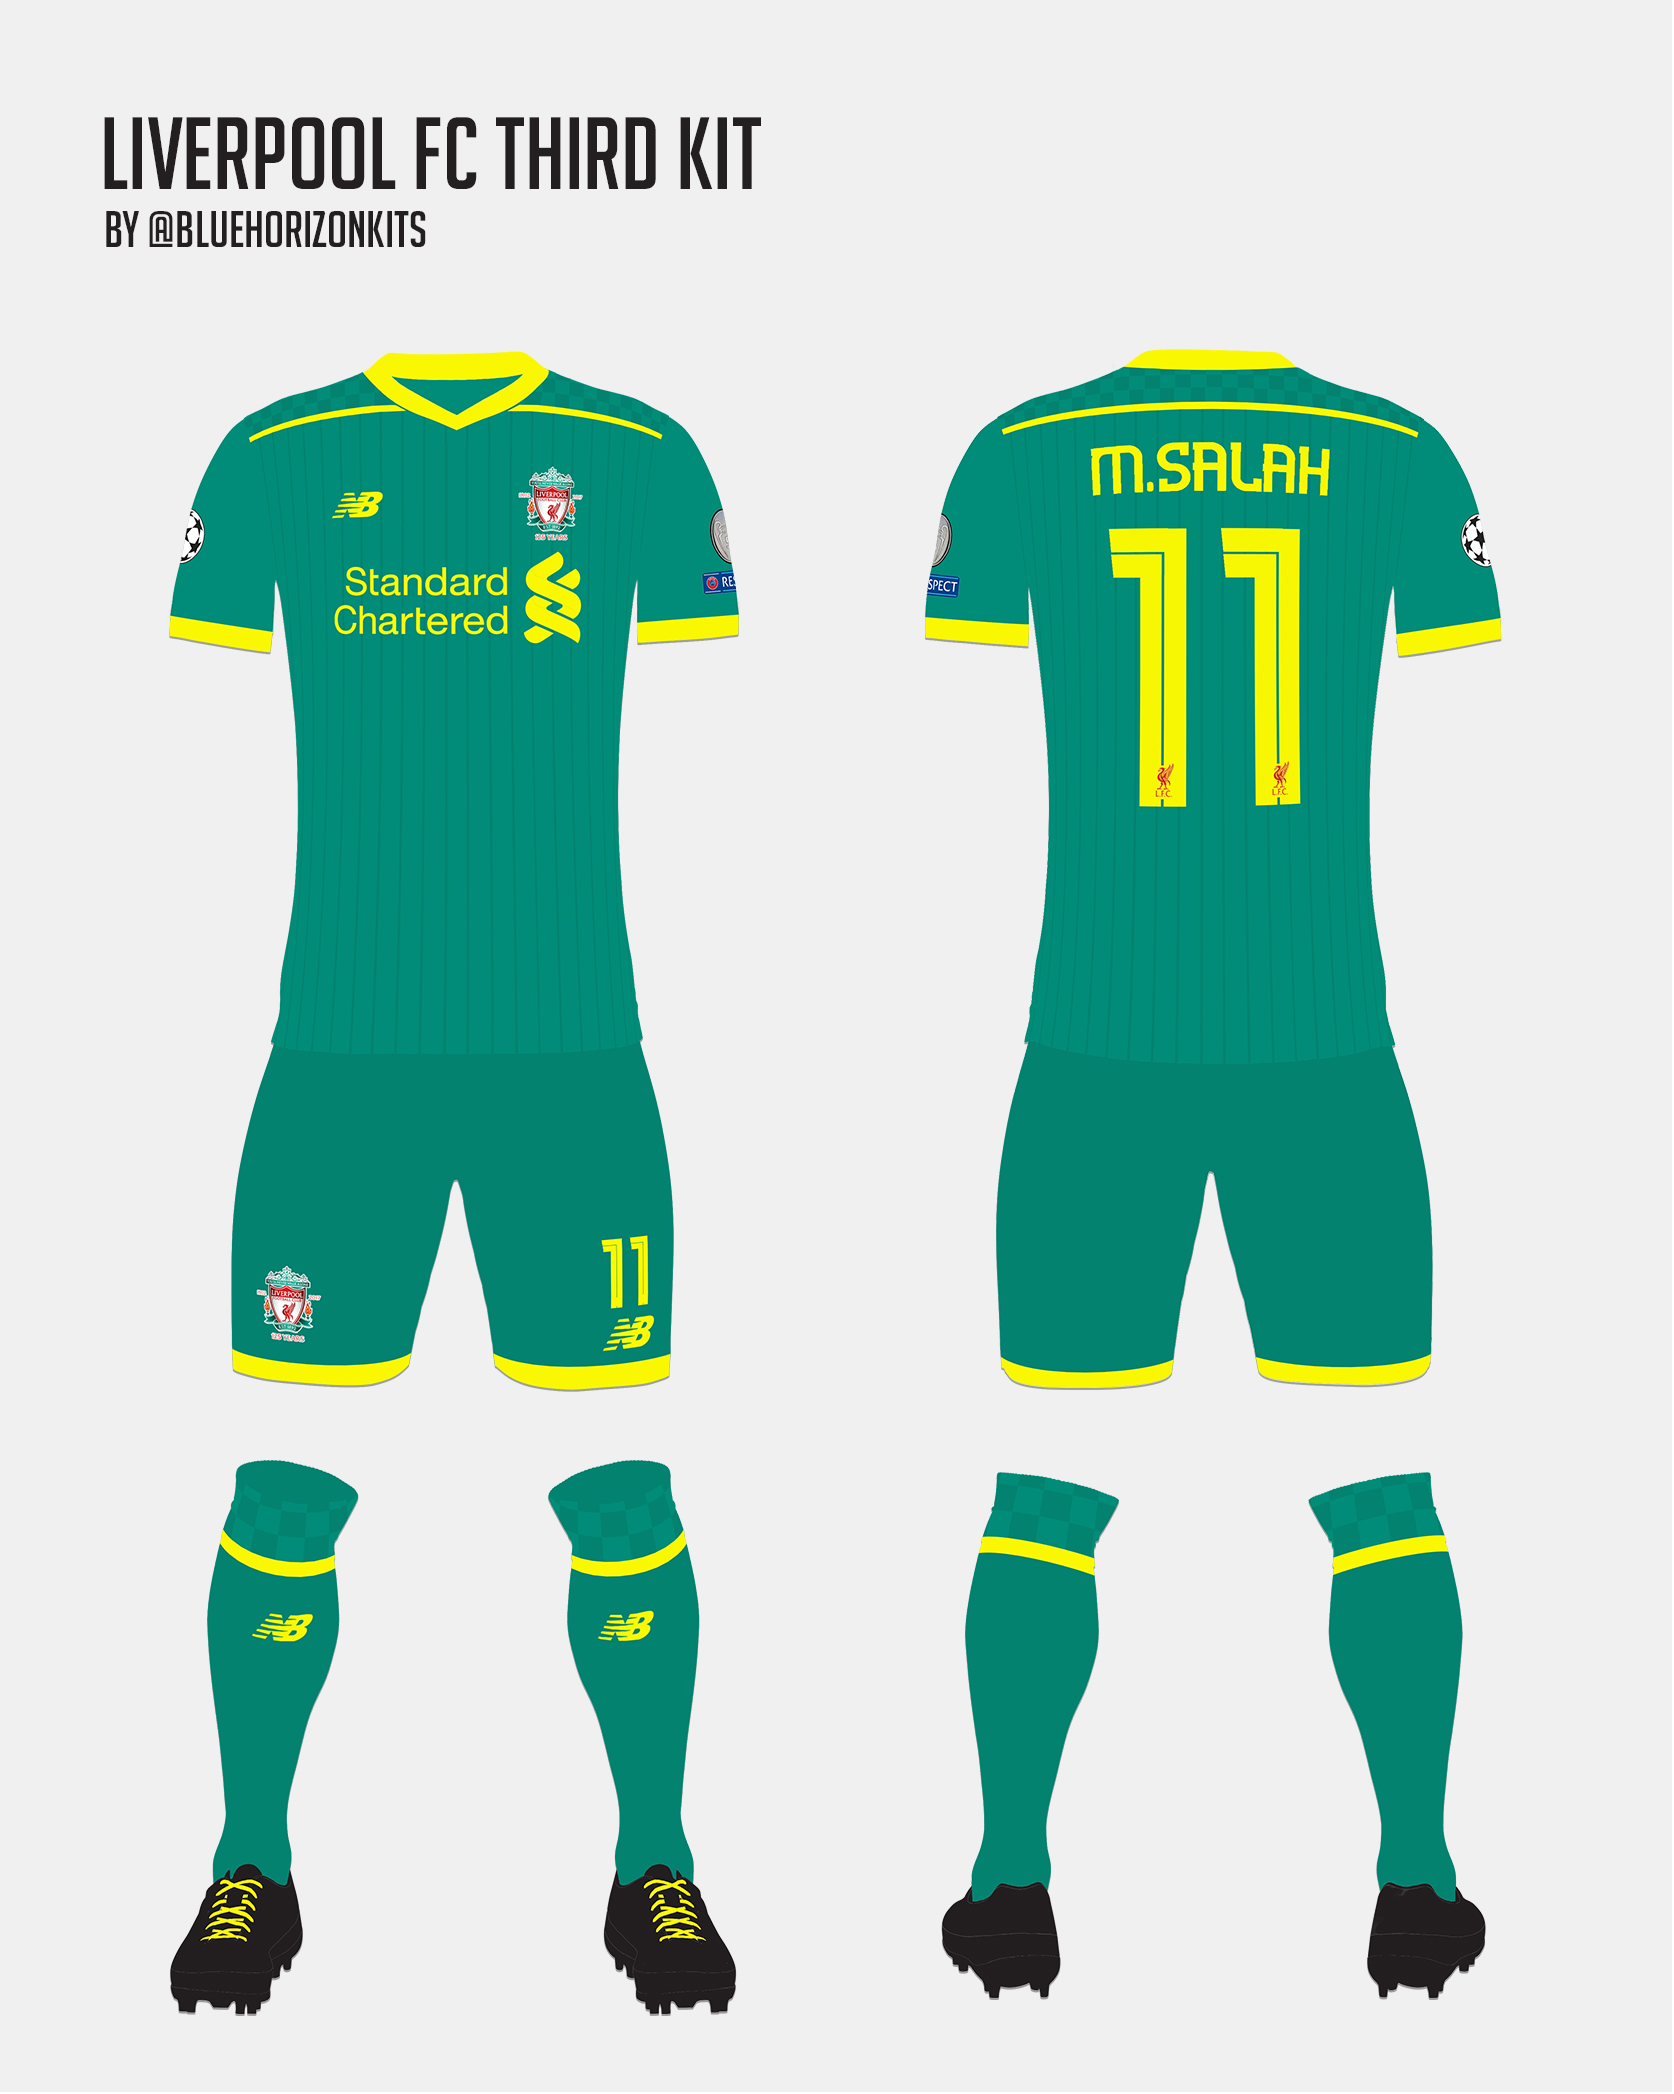 huge selection of f8c6a 1819c Liverpool FC Third Kit